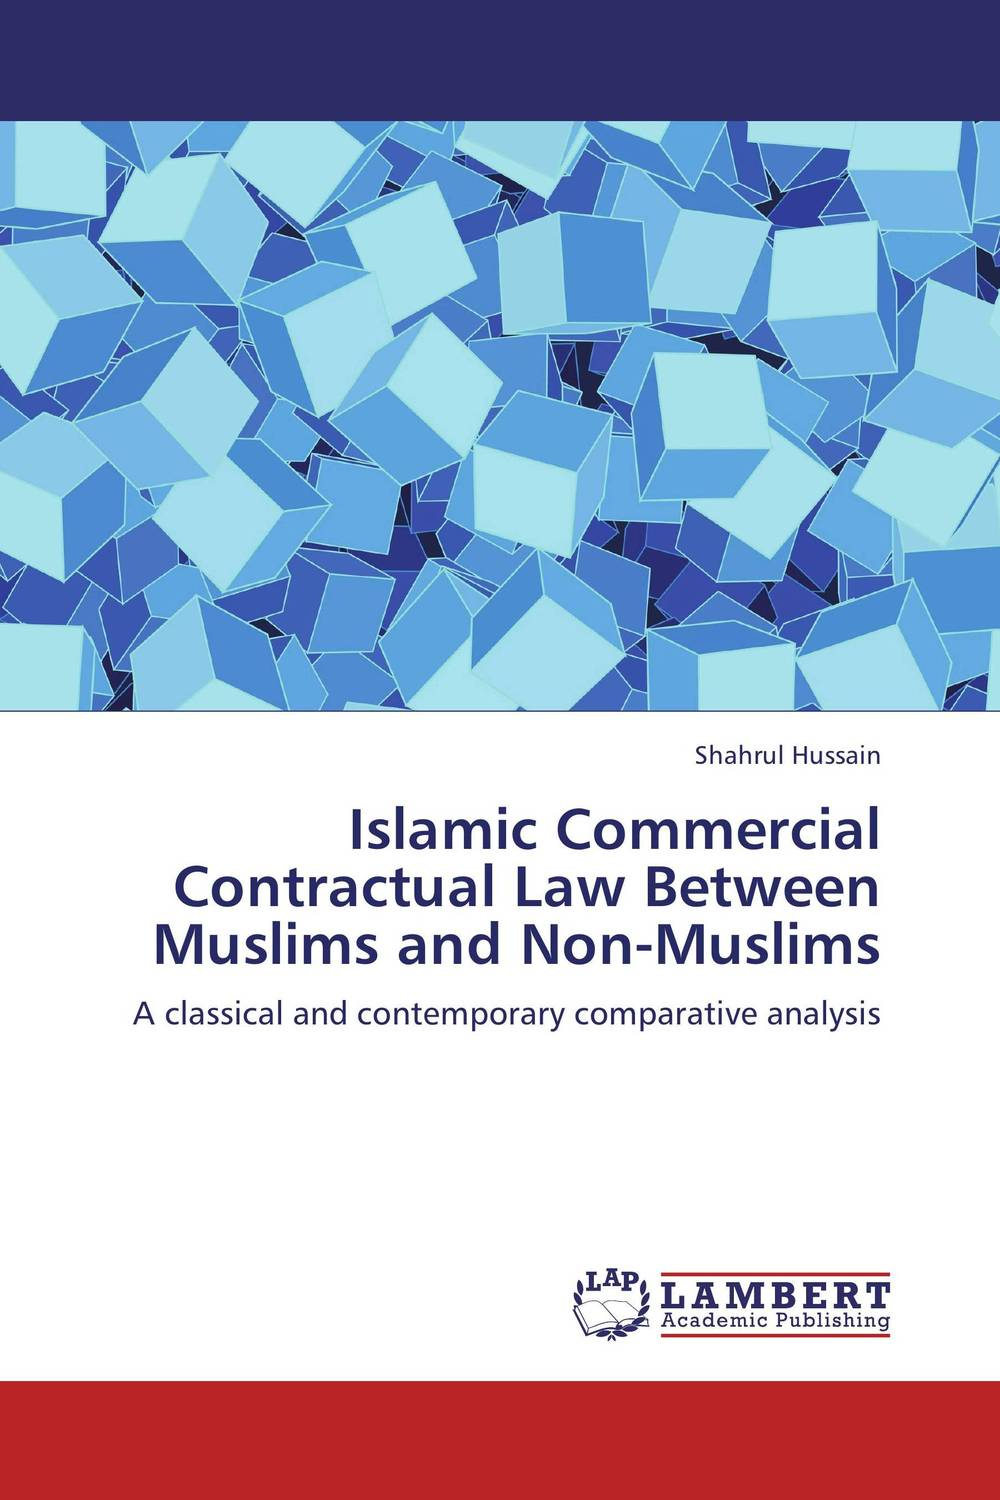 Islamic Commercial Contractual Law Between Muslims and Non-Muslims muhammad saleem yusuf islamic commercial law